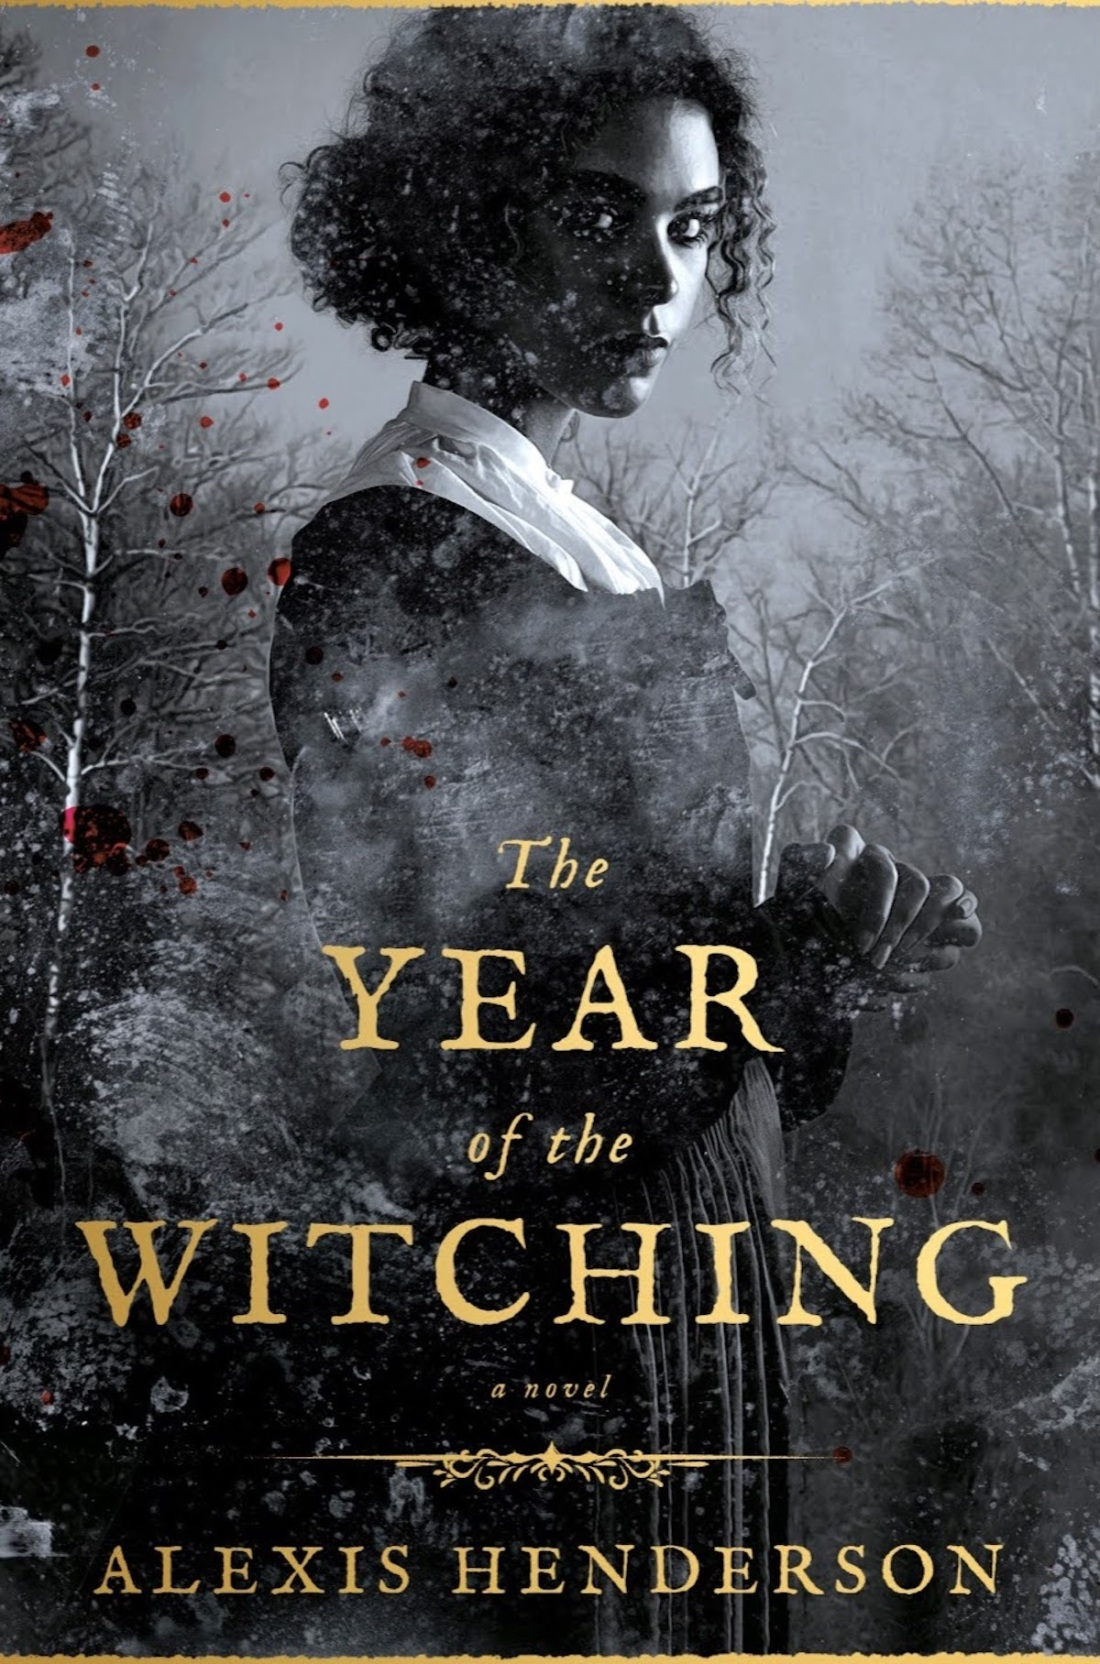 the year of the witching by Alexis Henderson book cover